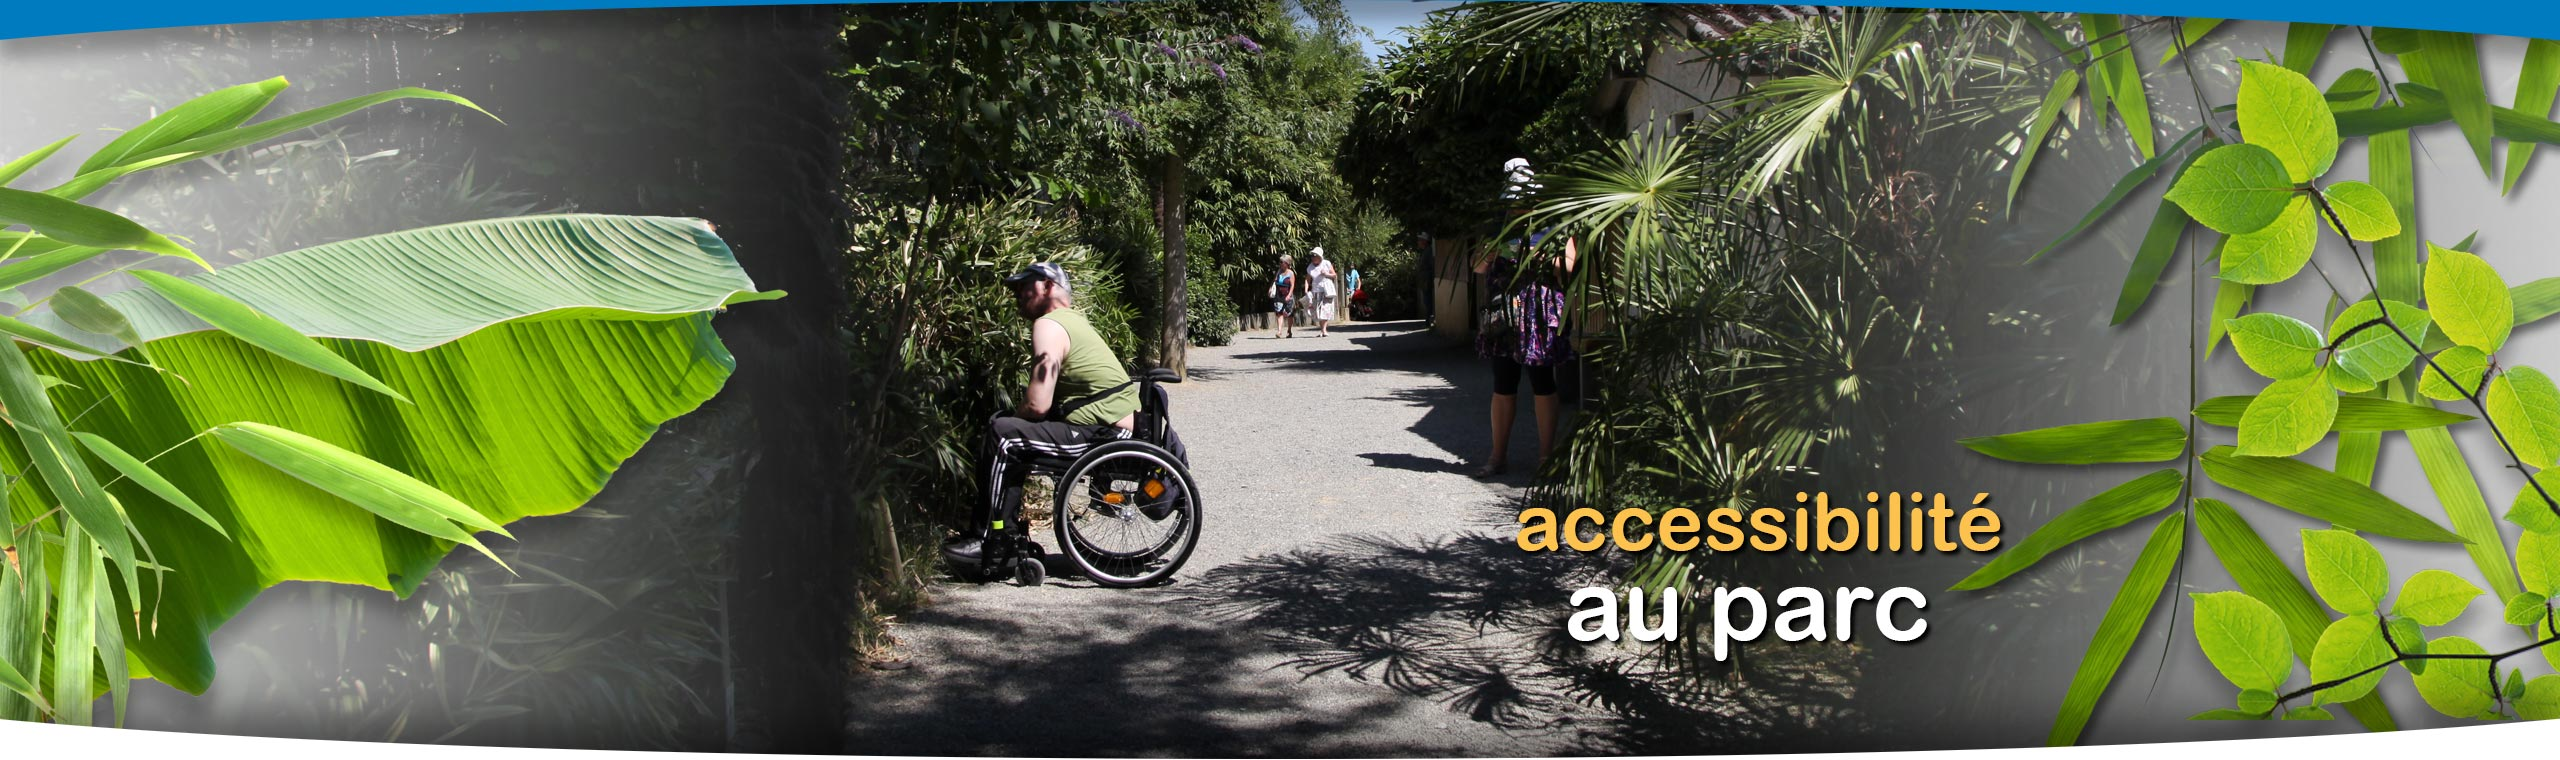 zoo-assn-accessibilte-01.jpg